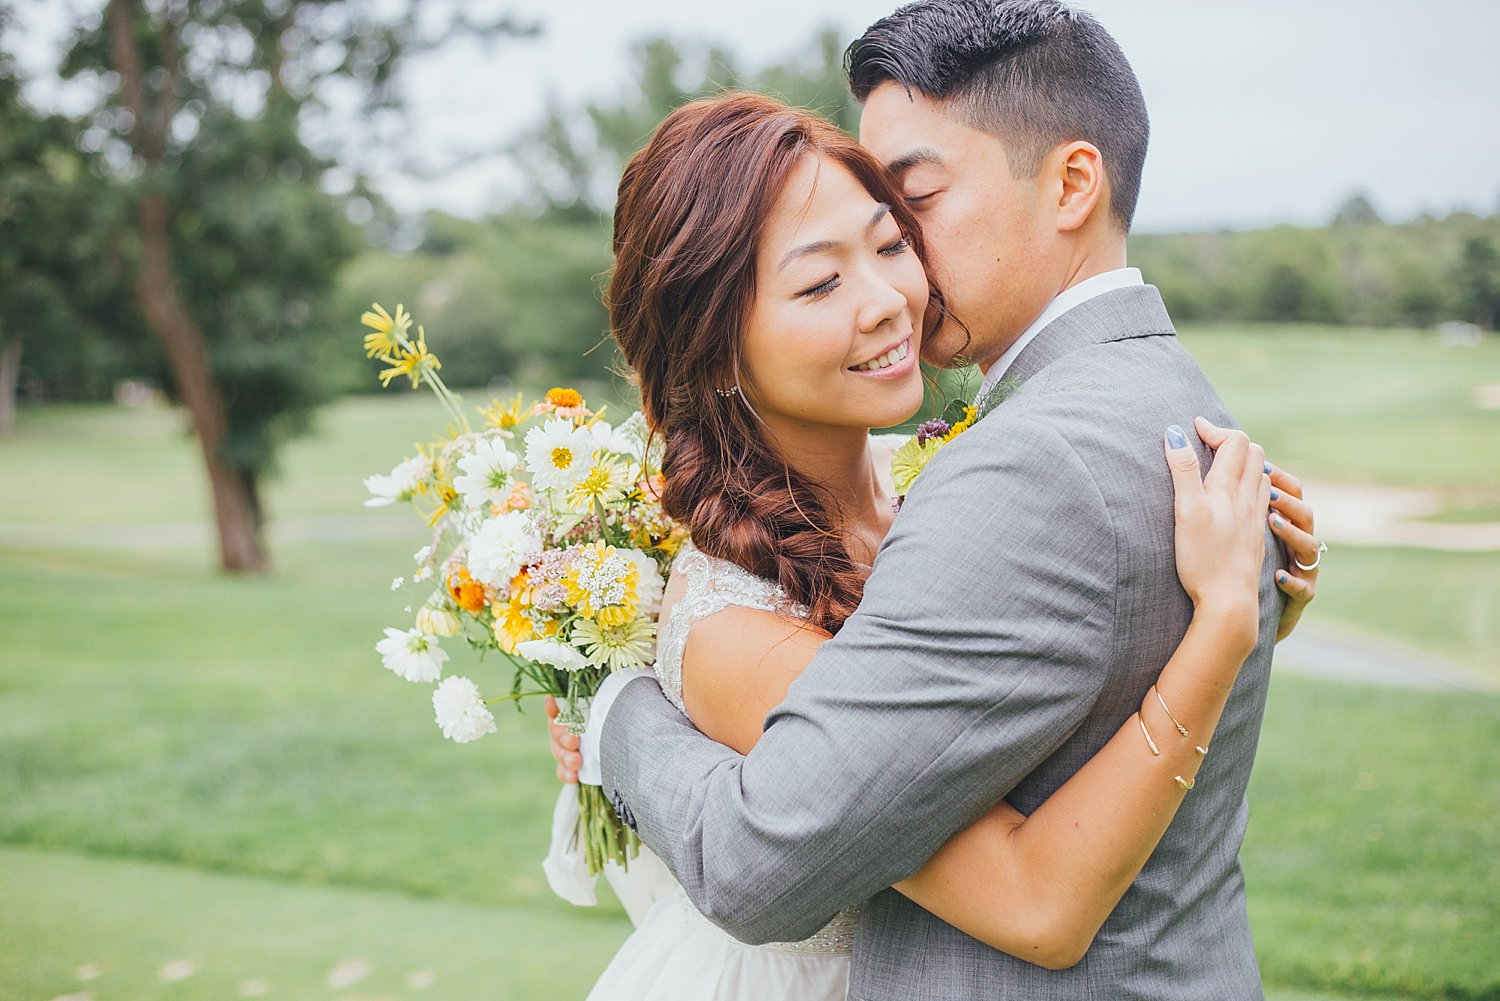 nyc-wedding-photography-nj-tri-state-cinematography-intothestory-by-moo-jae_0351.jpg